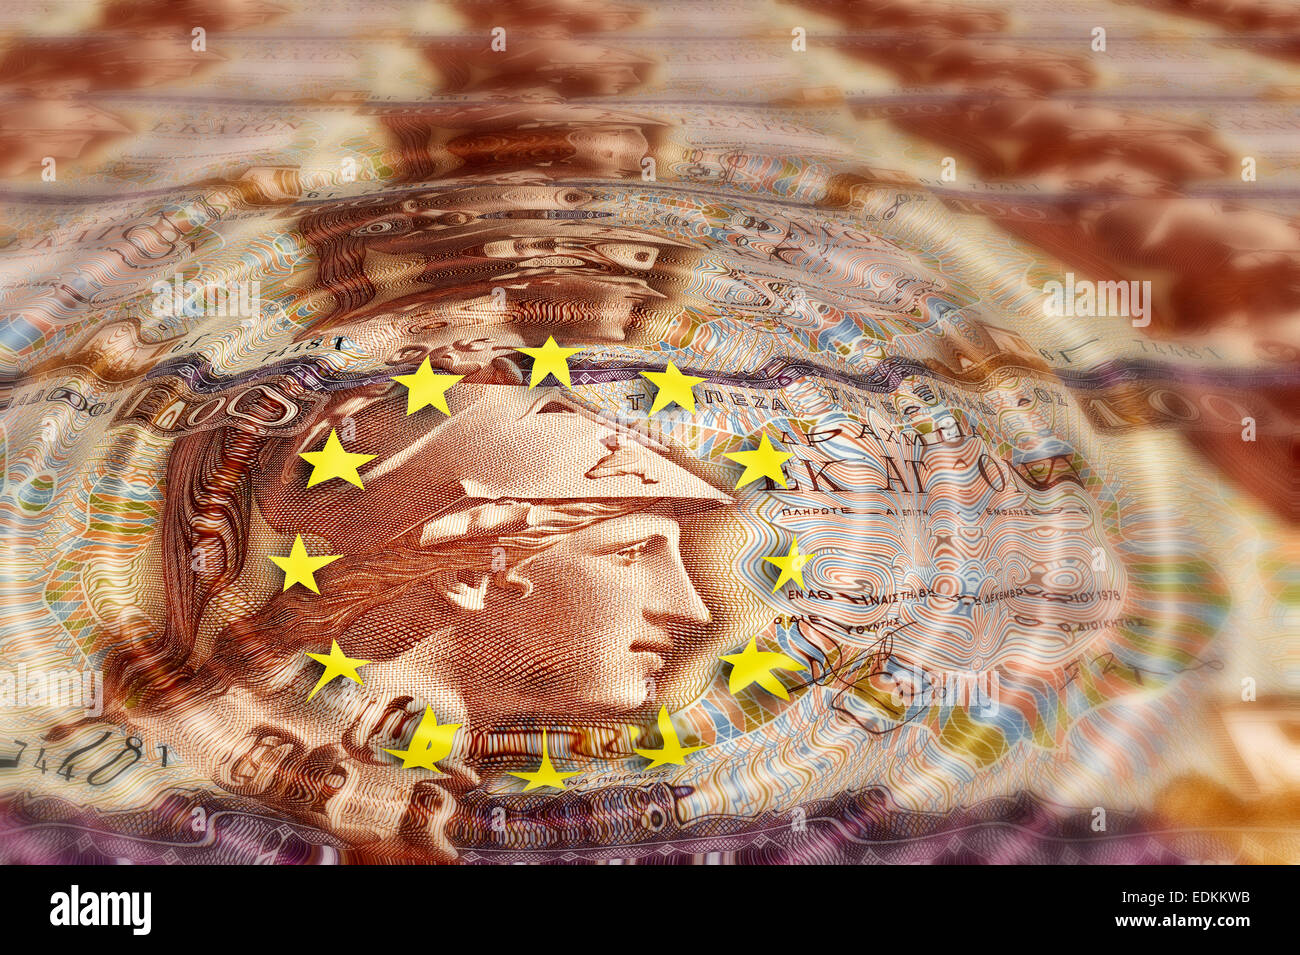 Banknote from Greece, 100 drachmas from 1978 with EU sign, symbolic image - Stock Image